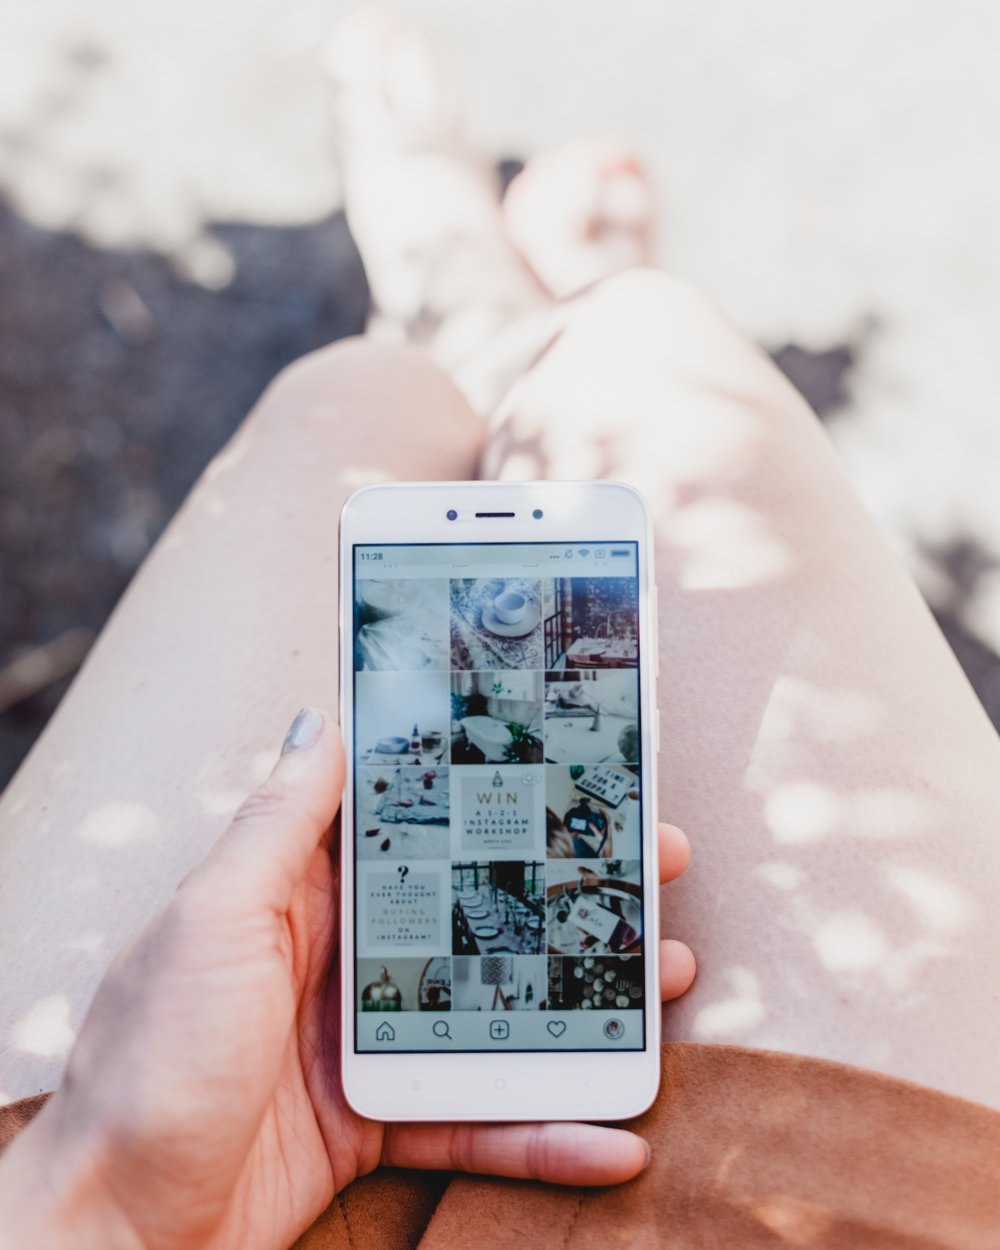 Instagram is a great platform for giveaways and gaining brand recognition.